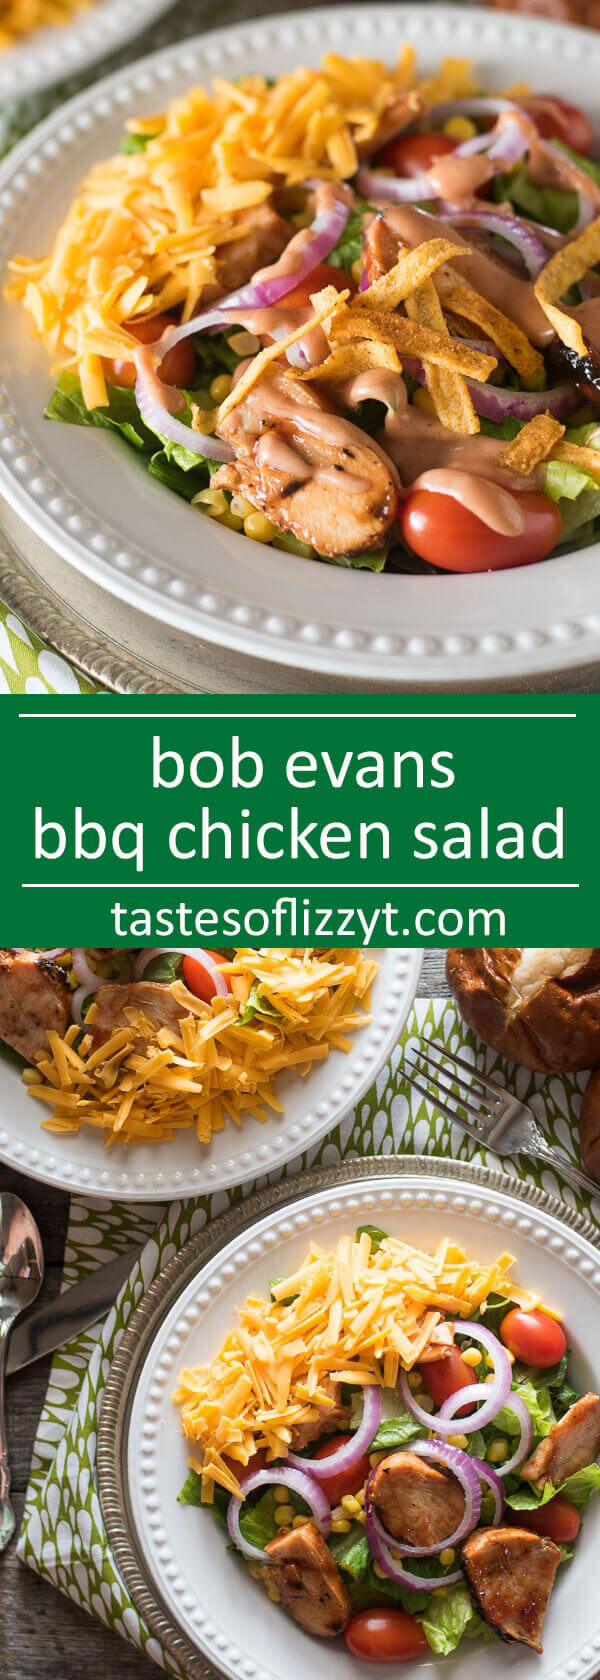 This Barbecue Chicken Salad is a copycat of Bob Evans' Wildfire Chicken Salad. Tangy barbecue chicken tops a bed of fresh veggies. Drizzle with a simple 2-ingredient barbecue ranch dressing. easy summer salad recipe / copycat recipes / chicken salad / spicy salad